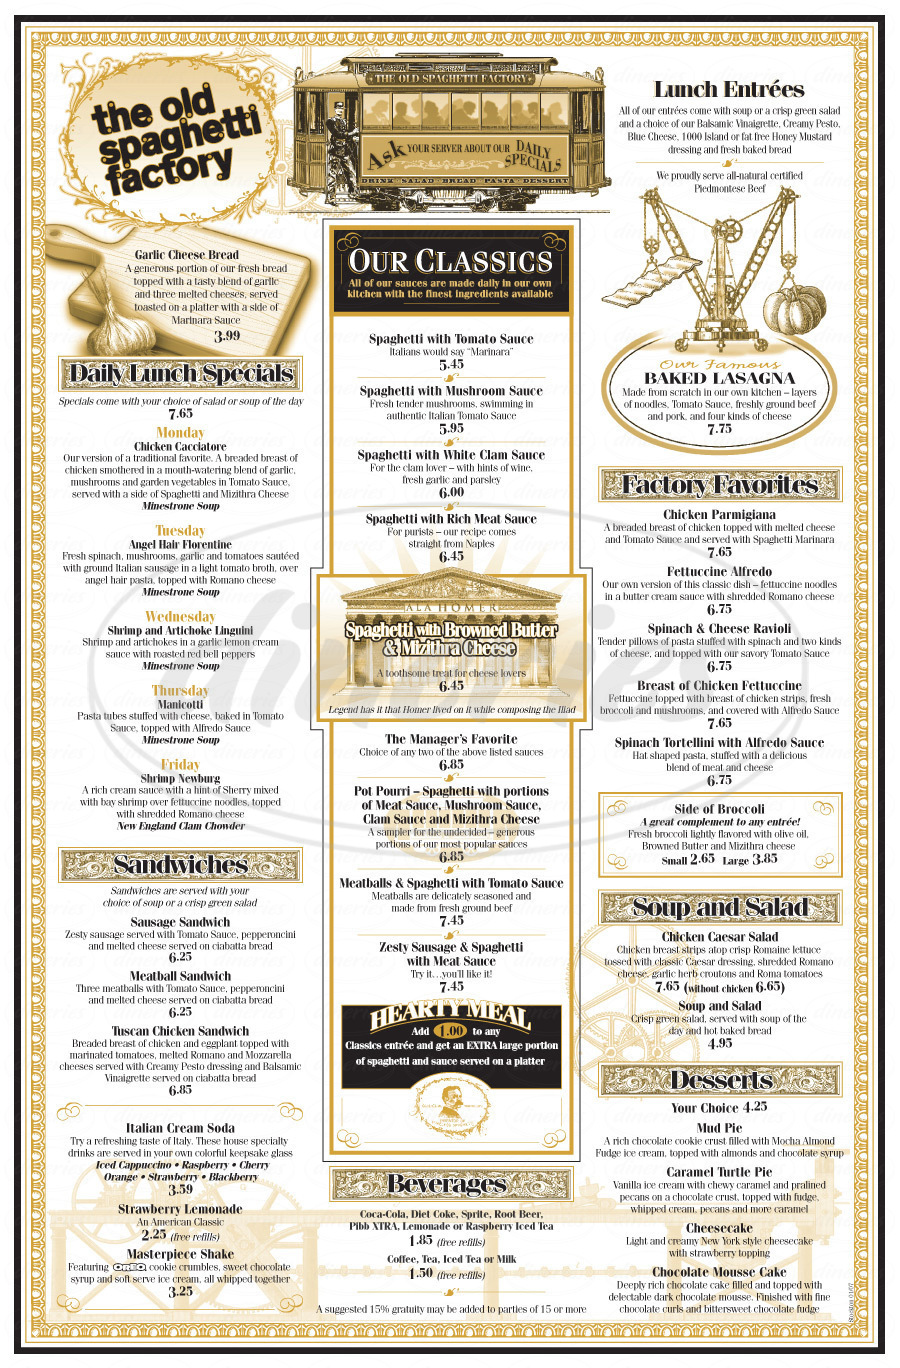 menu for The Old Spaghetti Factory